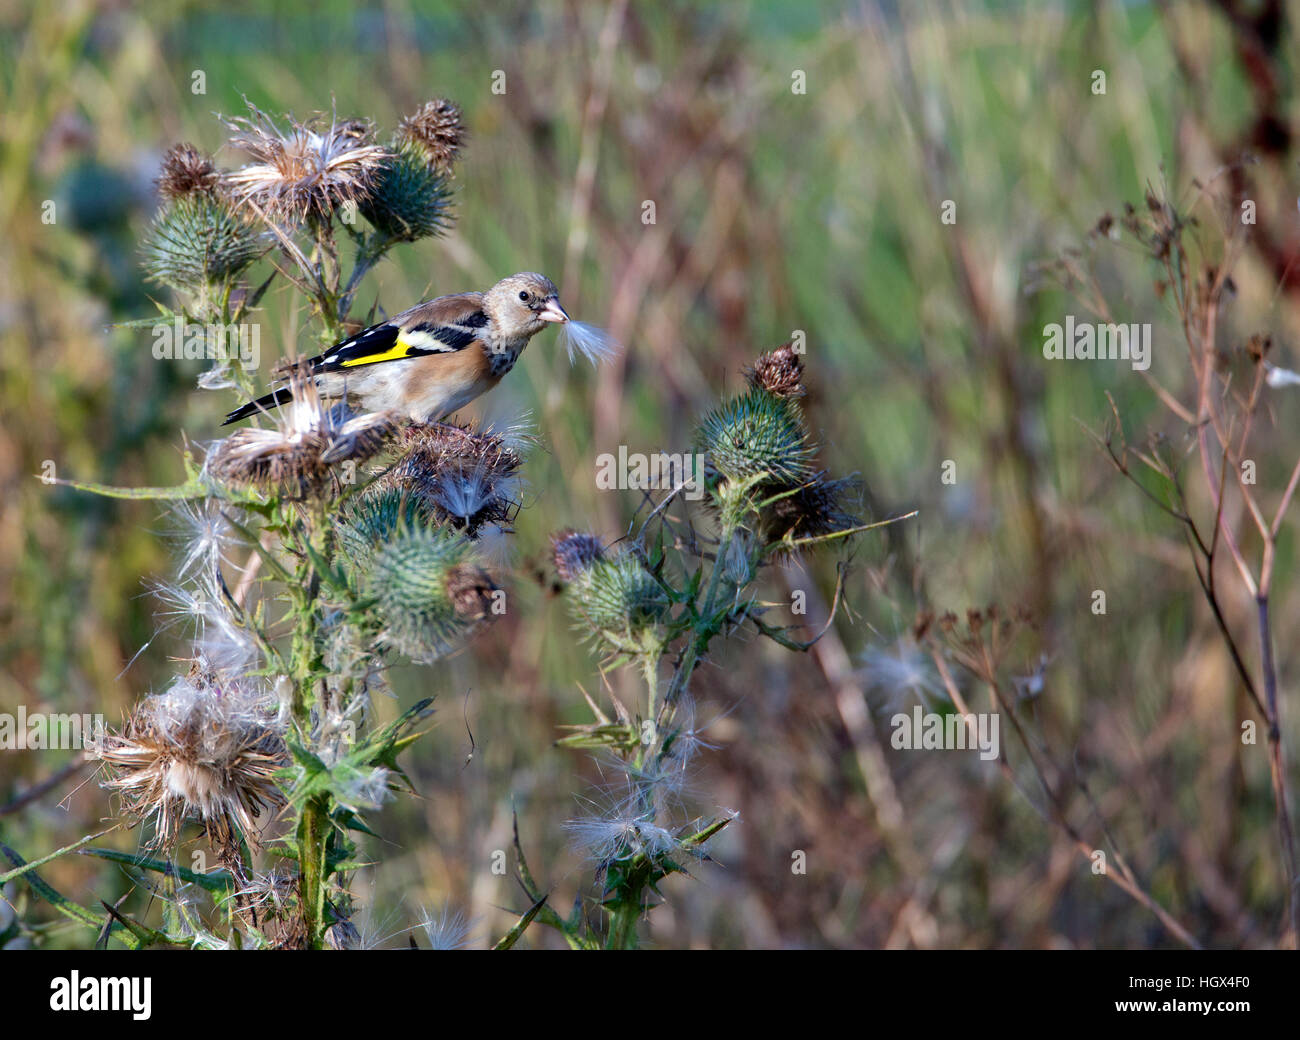 Juvenile Goldfinch (Carduelis carduelis) feeding on  thistle (Cirsium vulgare) the bird has a white thistle plume - Stock Image